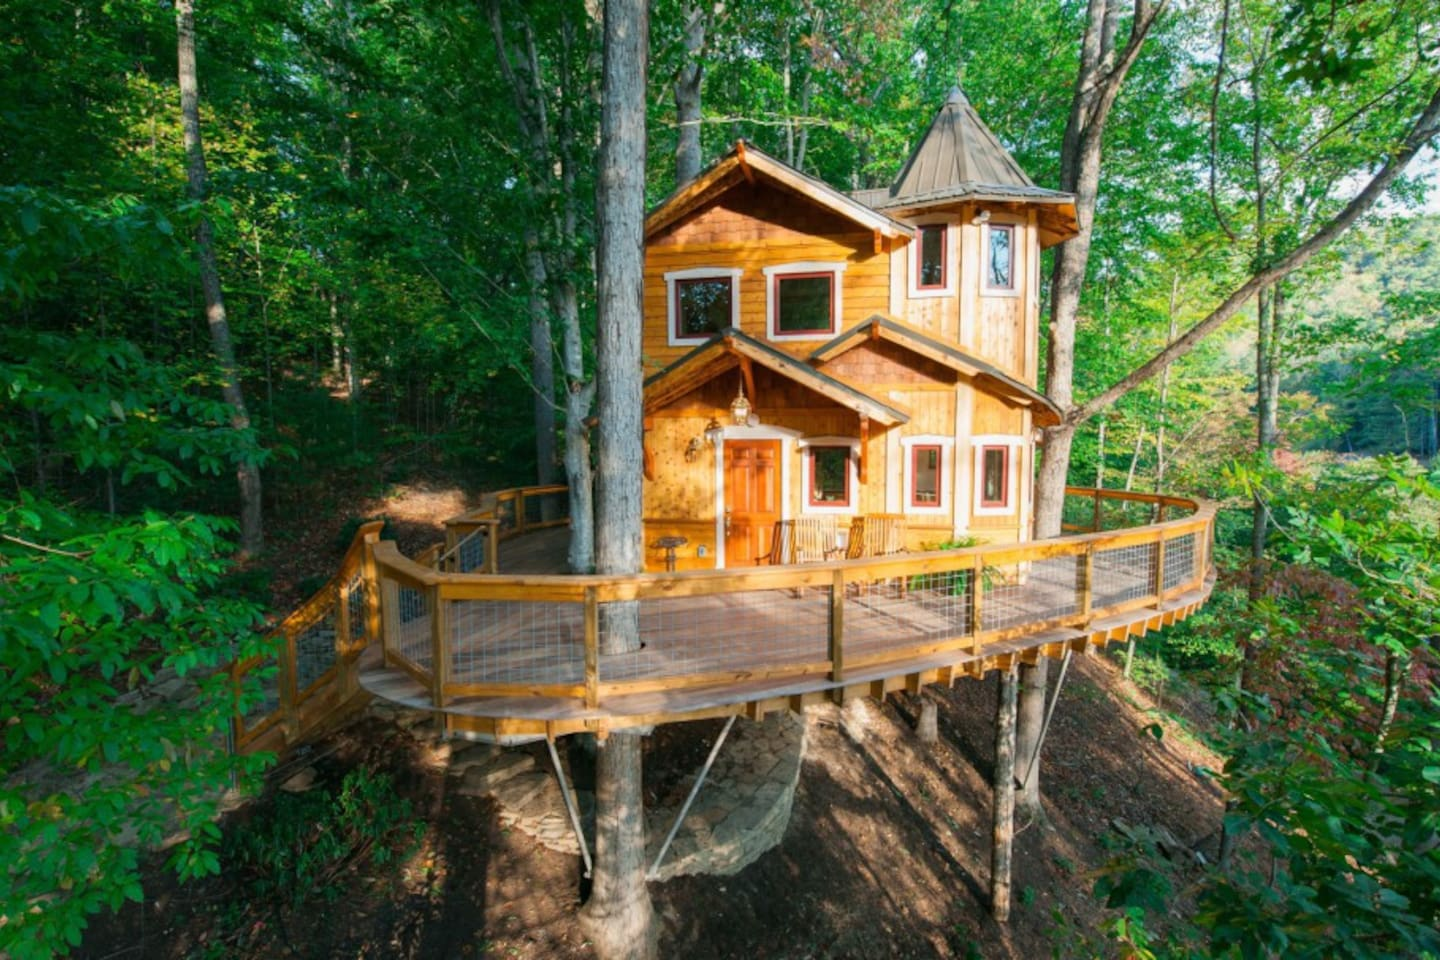 Behold the magnificent treehouse!!